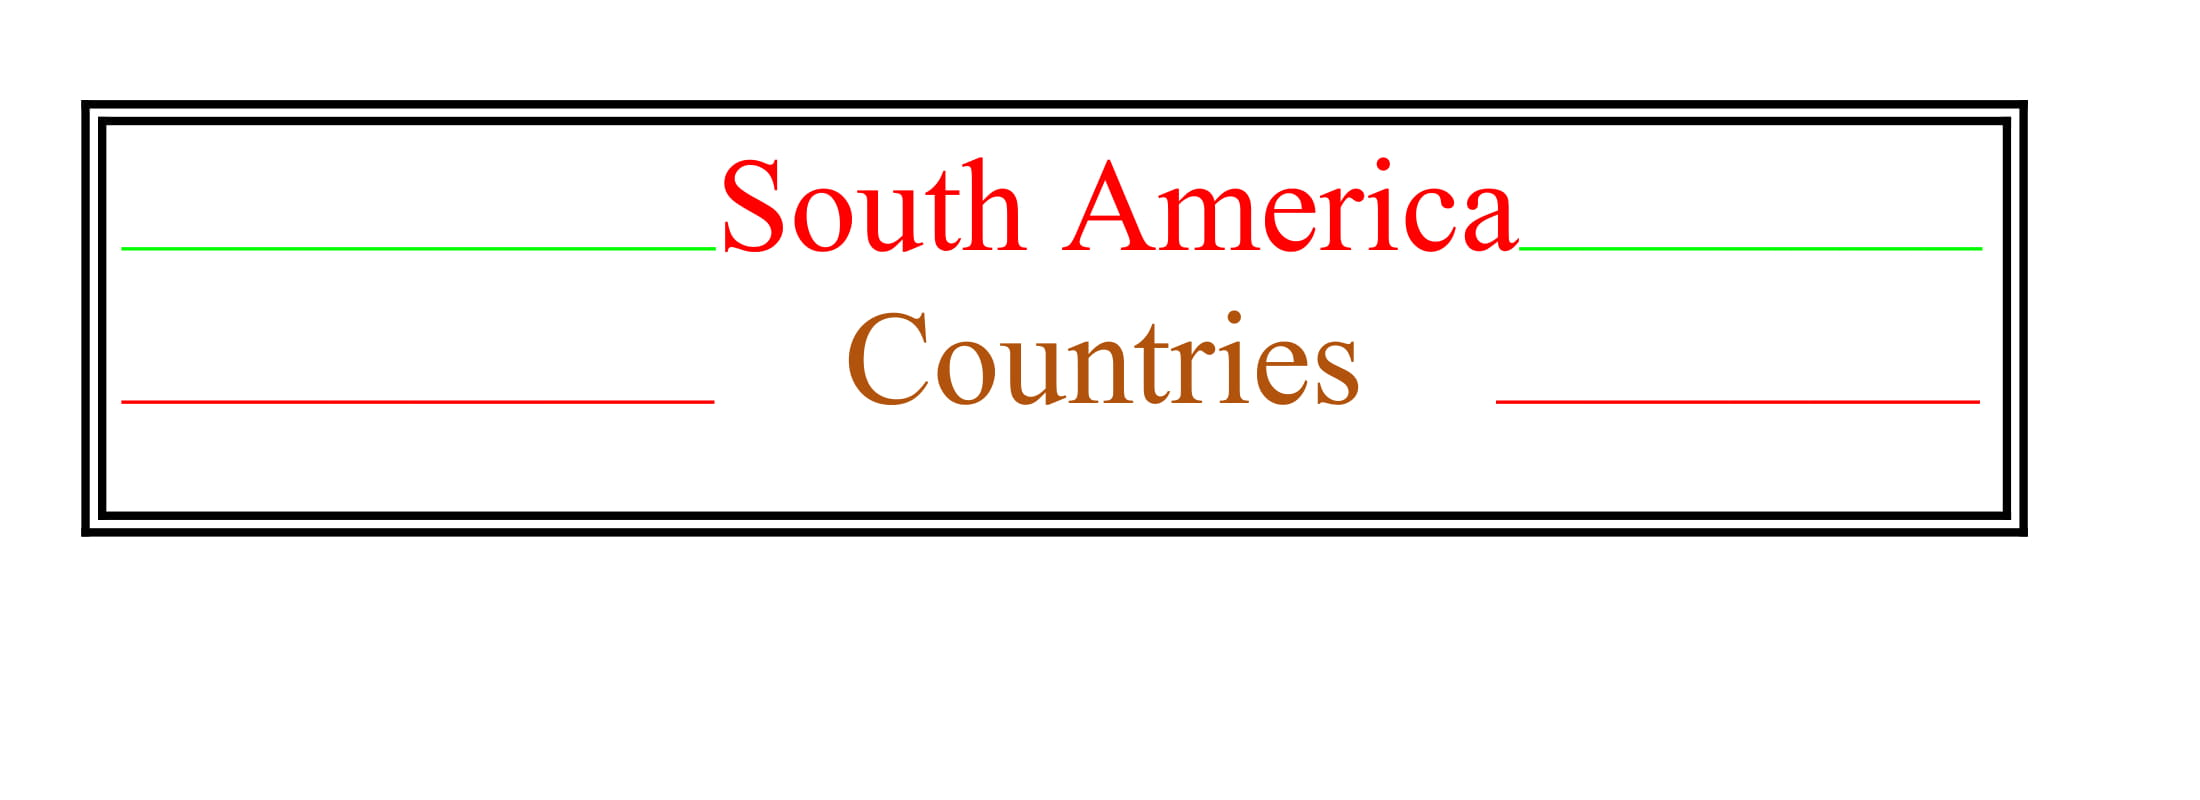 Universities of South America Countries